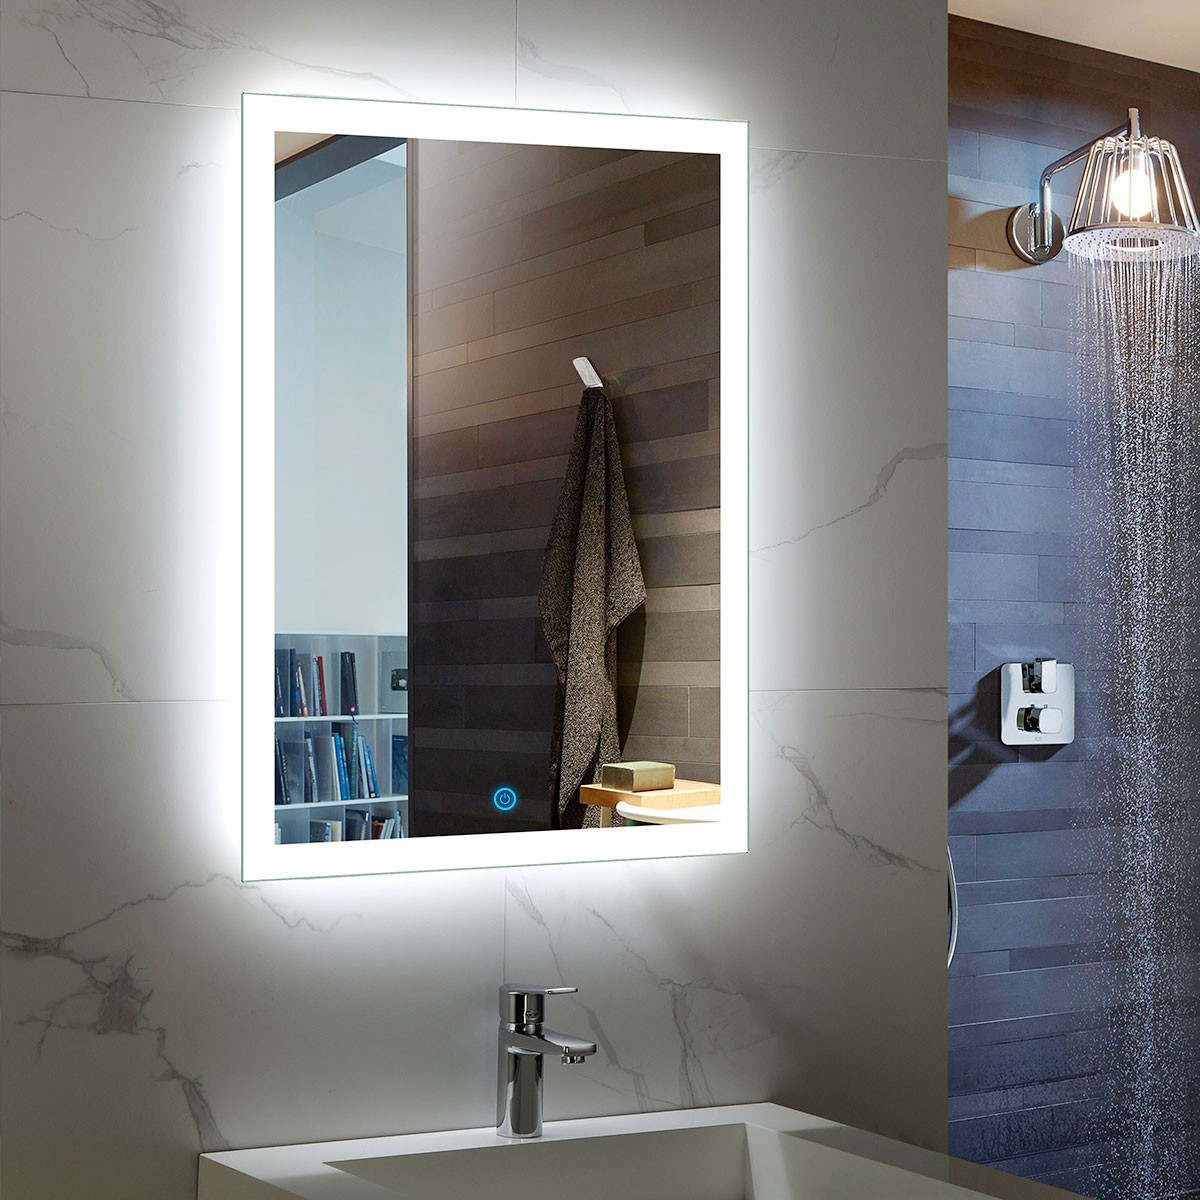 24 x 32 In Vertical LED Bathroom Mirror with Touch Button (DK-OD-N031)